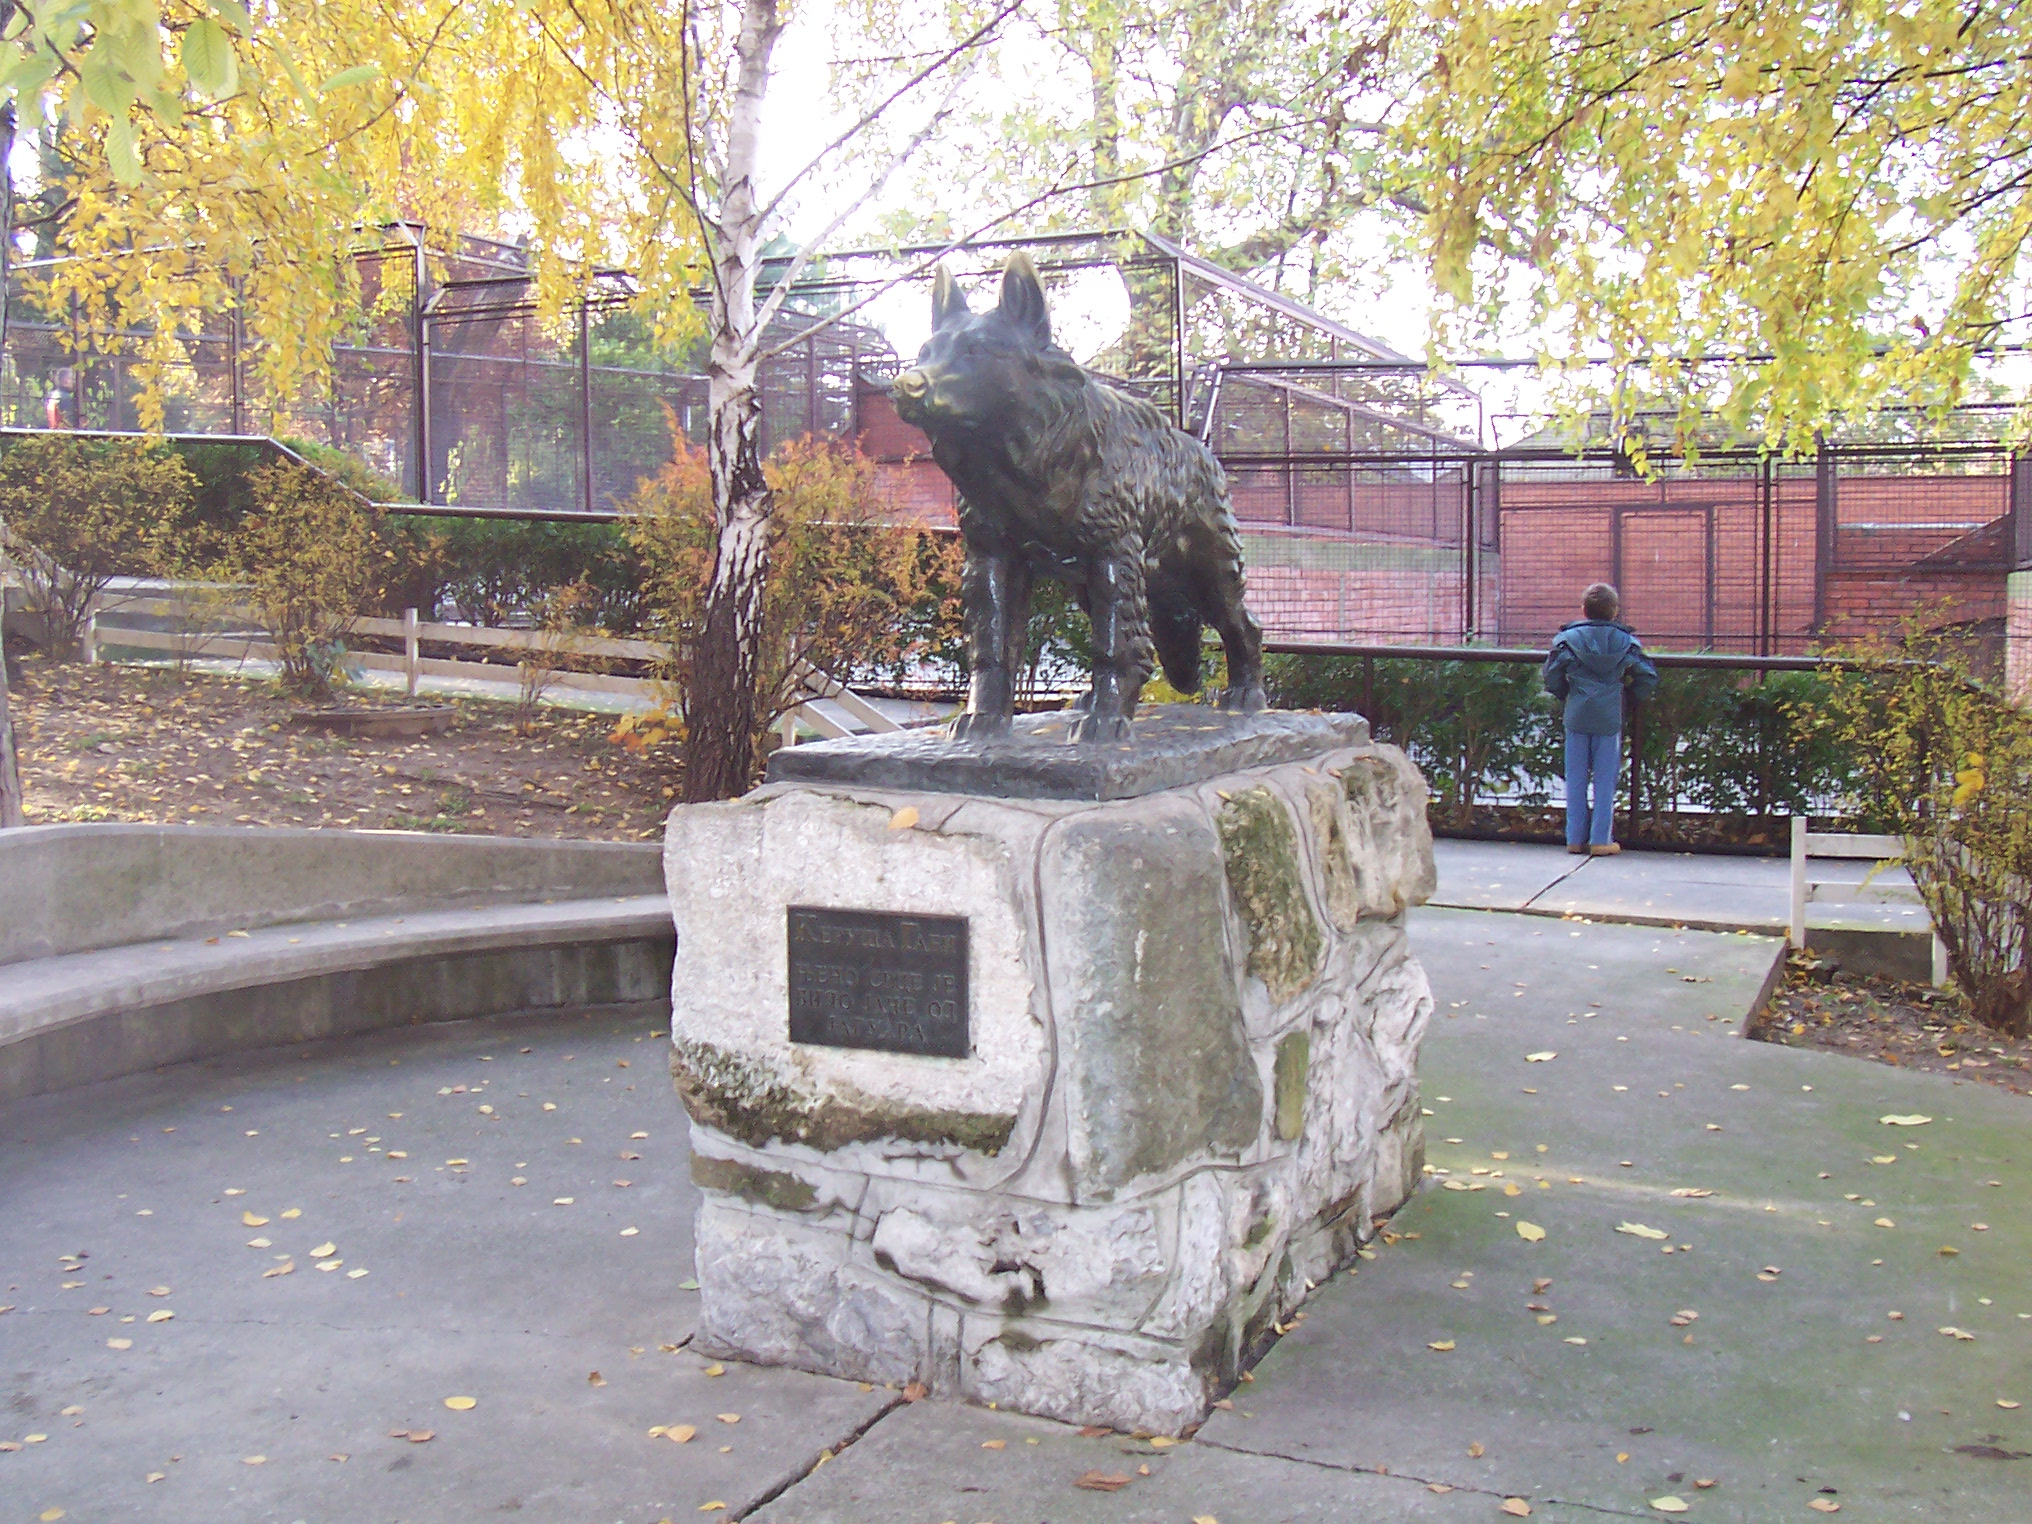 Statue at the Belgrade Zoo dedicated to Gabi, the German Shepherd who battled a puma that had escaped, saving the life of one of the Zoos guards in the process.